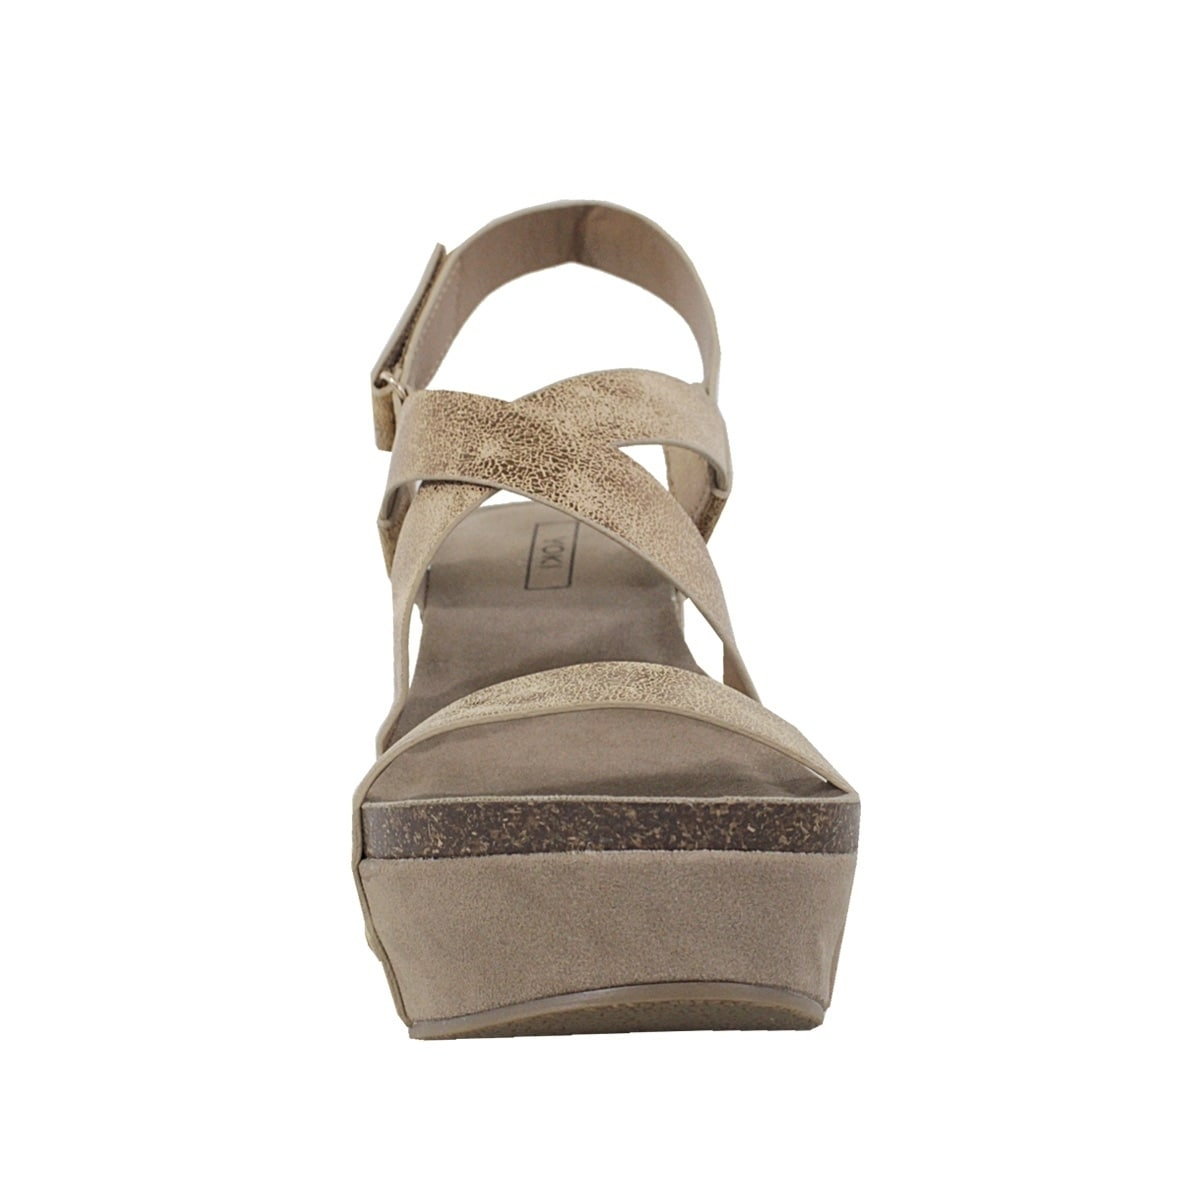 eadbccc0ab74 Shop YOKI-HESTRY-32 women s crisscross strap footbed wedge - Free Shipping  On Orders Over  45 - Overstock - 21022897